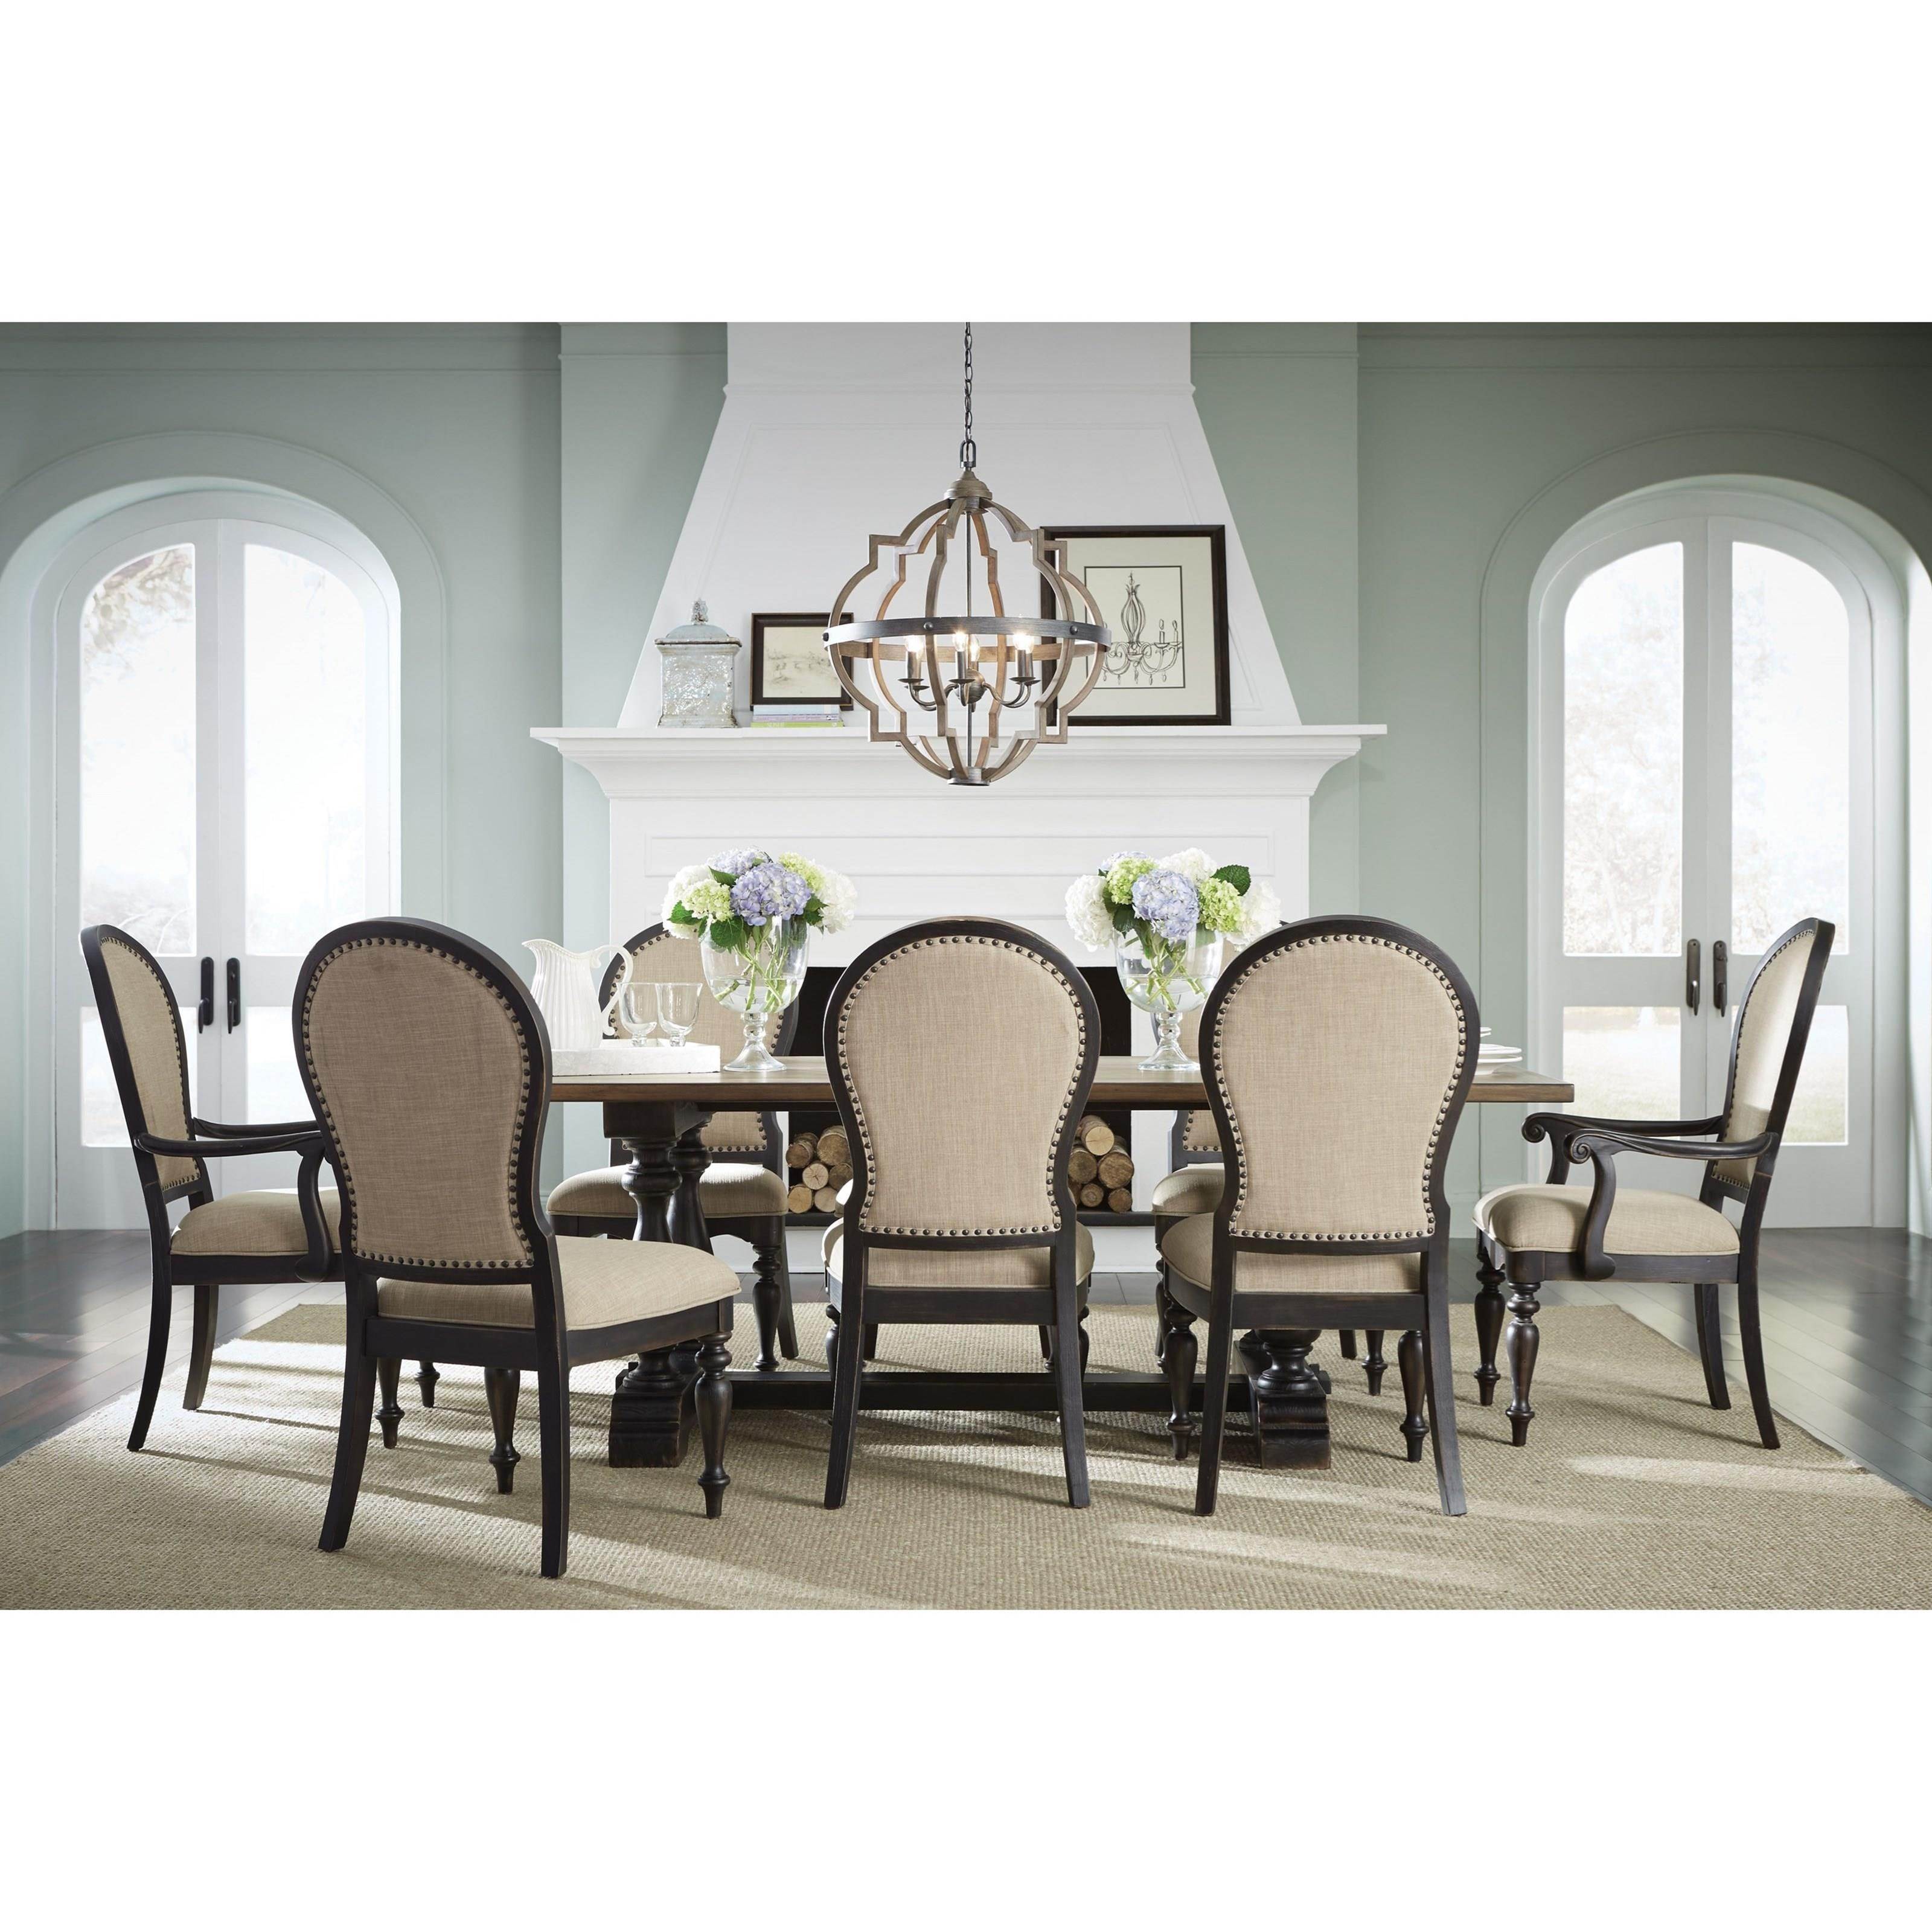 standard furniture cambria 12284 two tone upholstered side chair dunk bright furniture. Black Bedroom Furniture Sets. Home Design Ideas